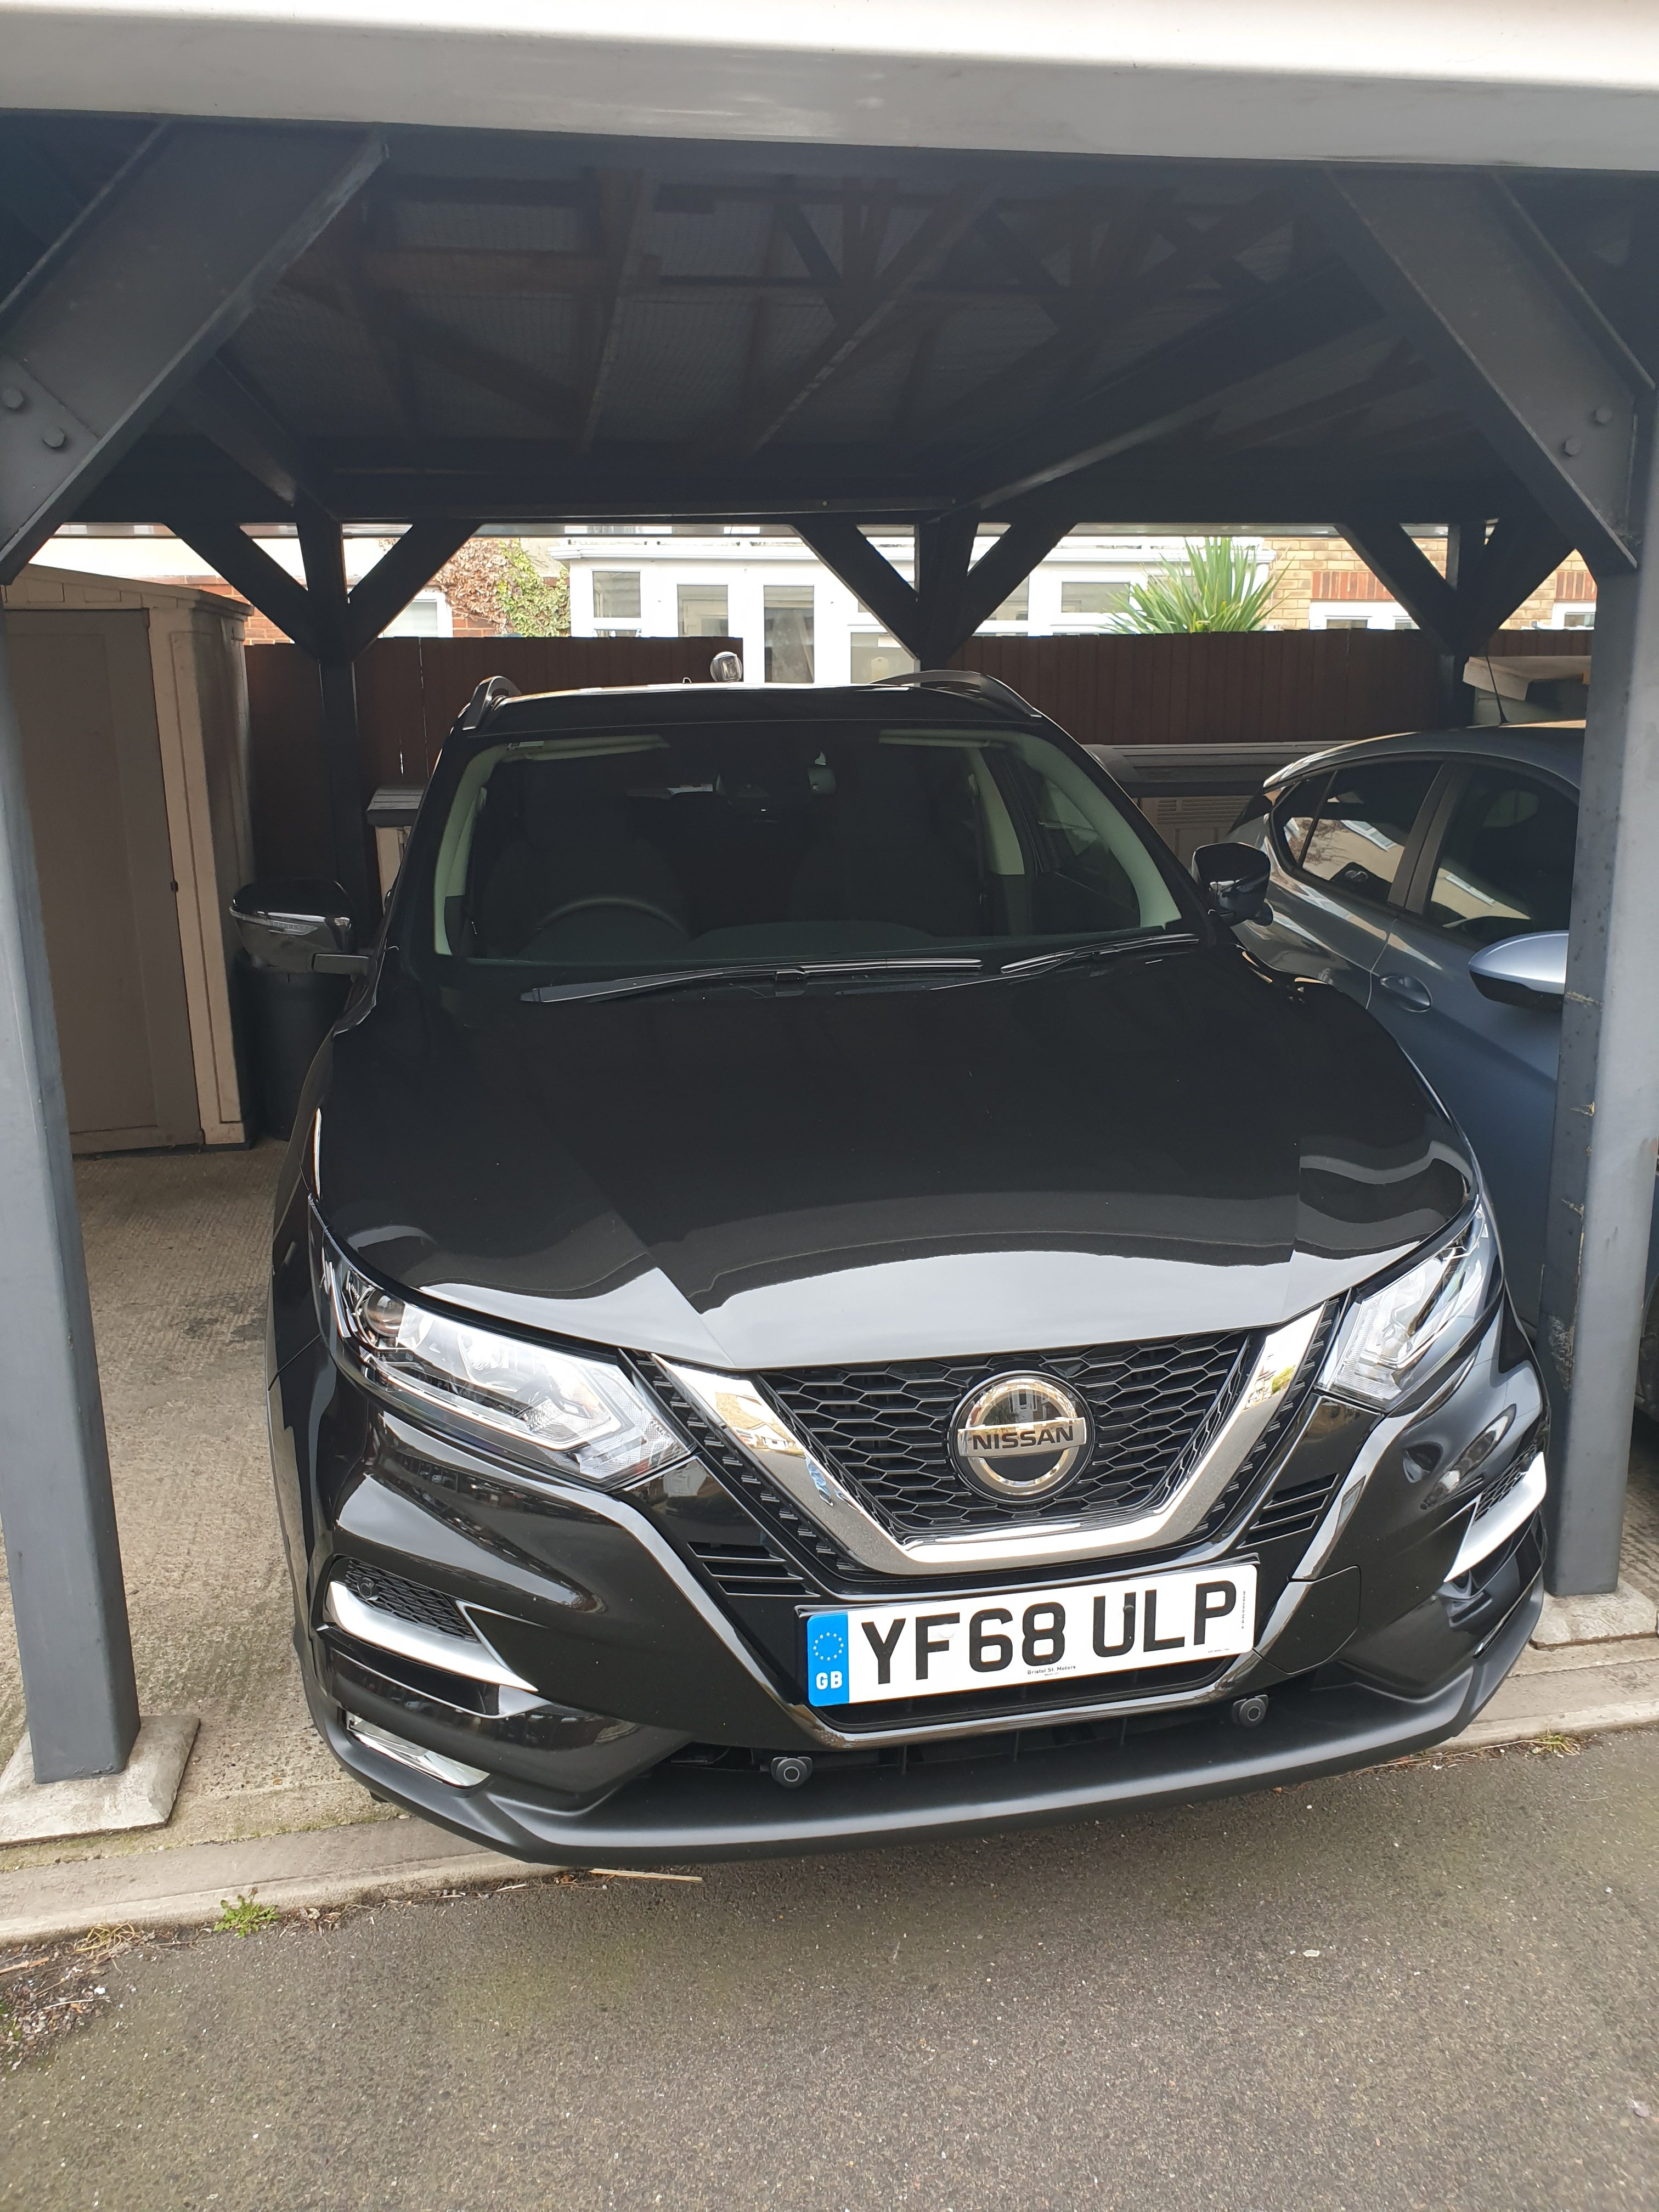 Nissan Qashqai Diesel Hatchback 1.5 dCi [115] N-Connecta [Glass Roof Pack] 5dr Car Leasing Best Deals